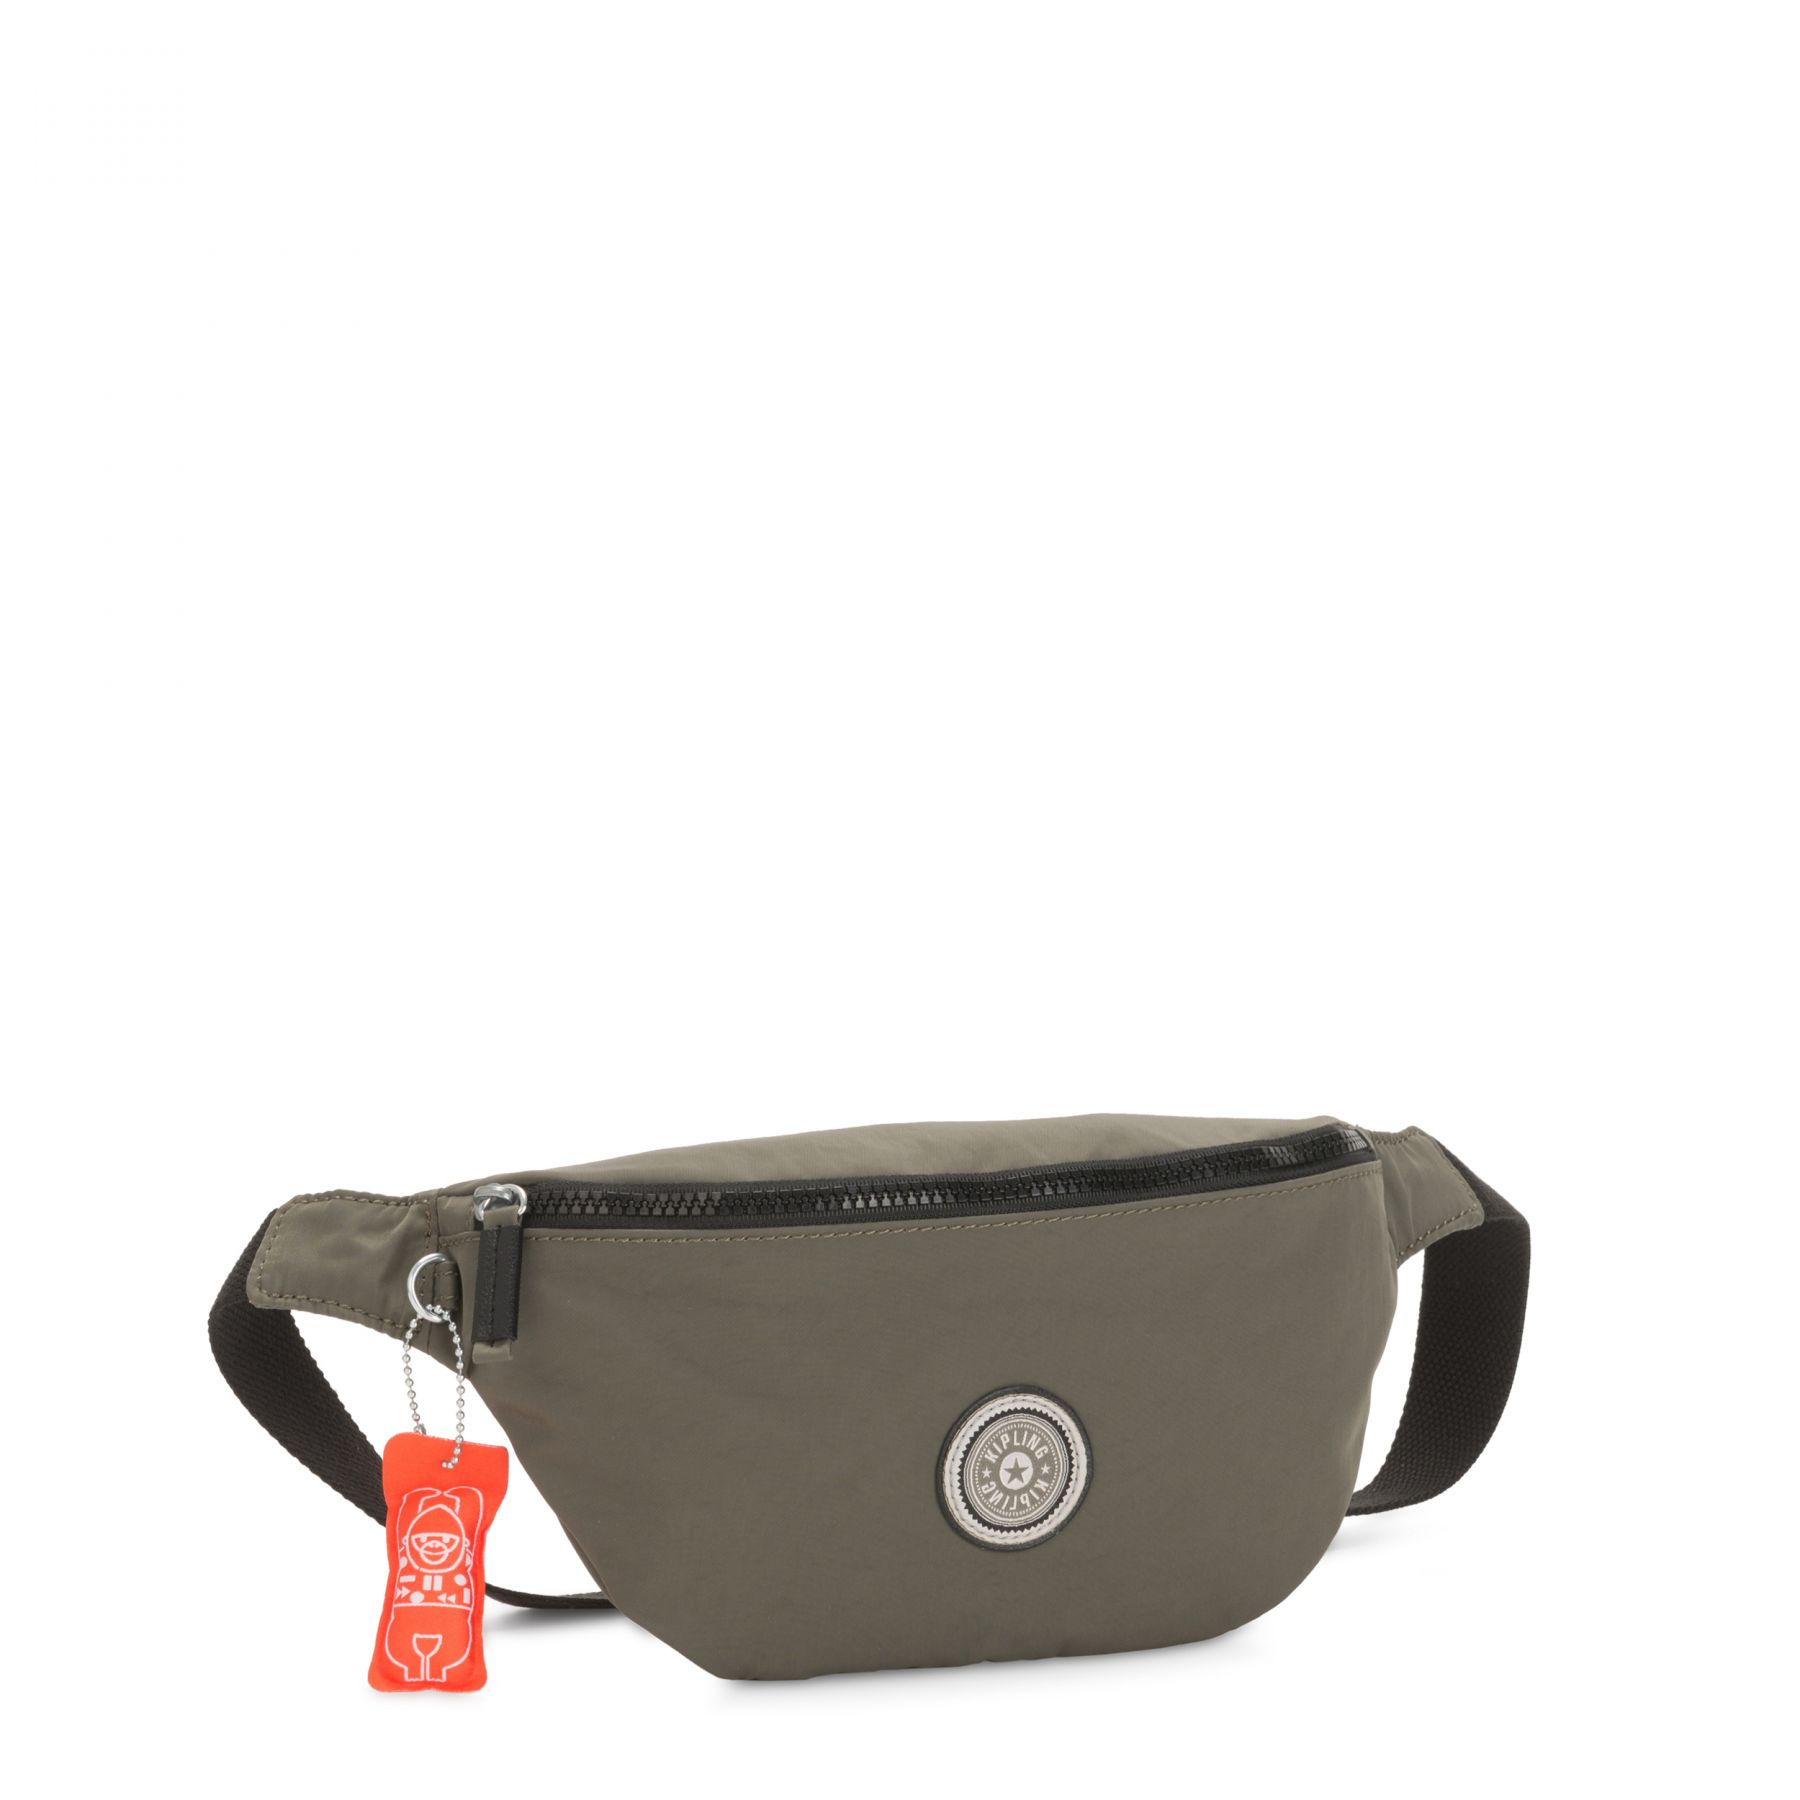 FRESH Latest Shoulder Bags by Kipling - view 4